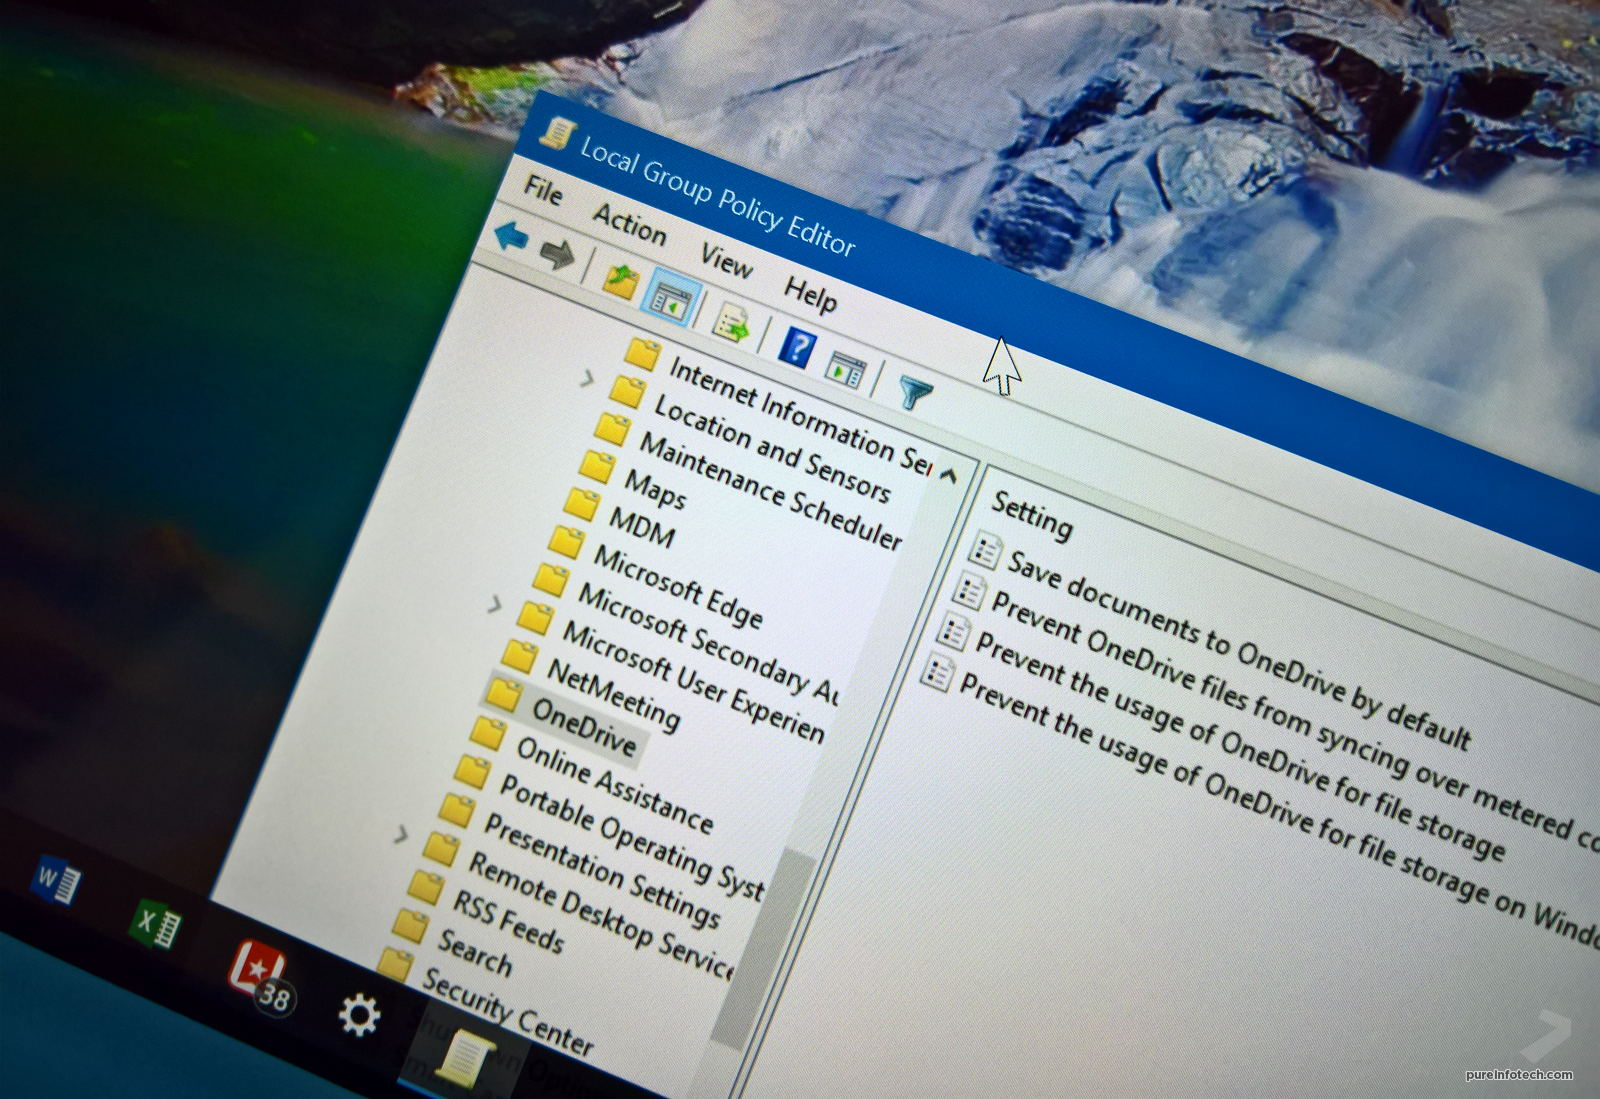 How to fully disable OneDrive on Windows 10 • PUREinfoTech